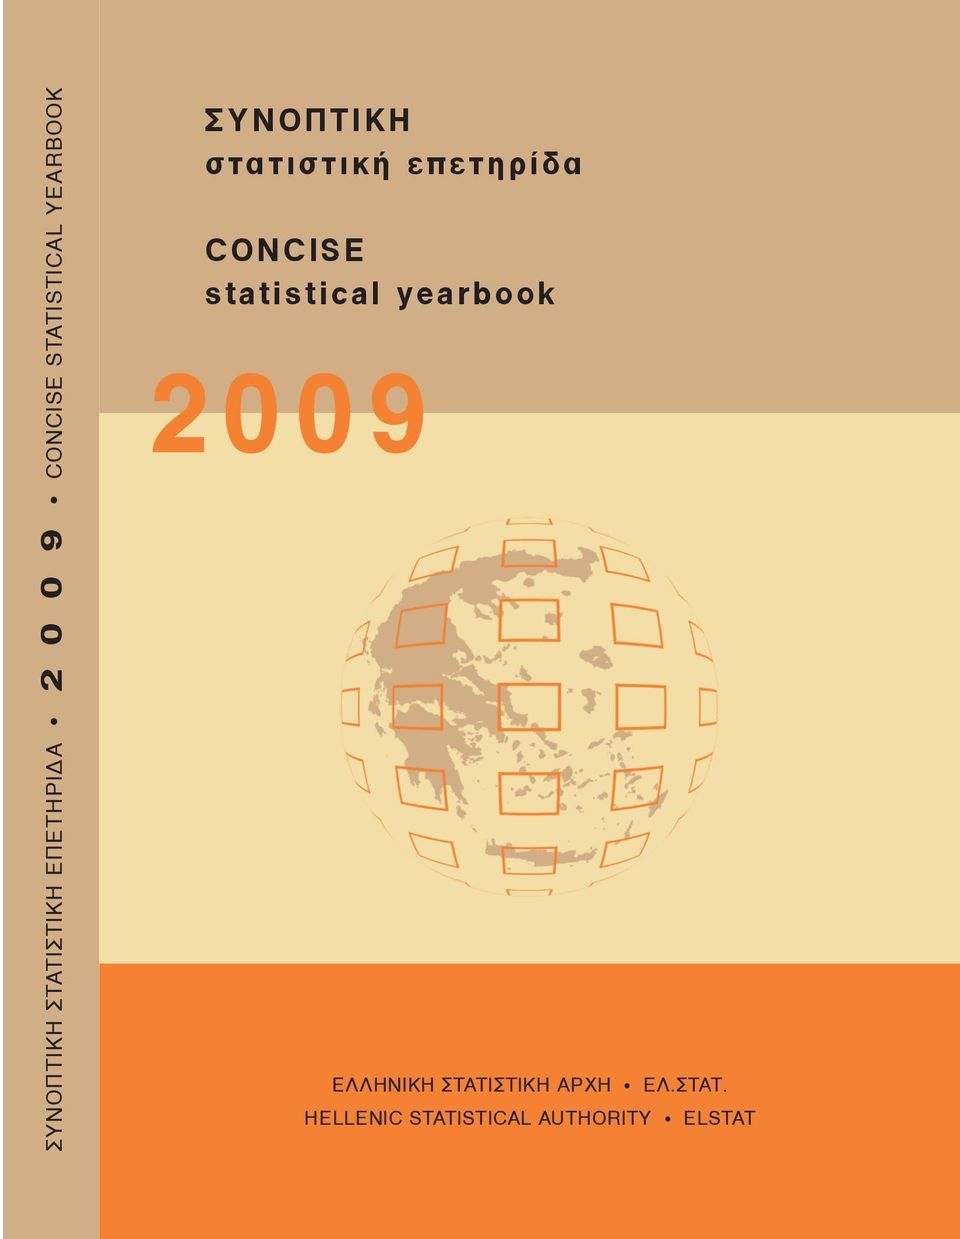 CONCISE statistical yearbook 2 0 0 9 EΛΛΗNIKH